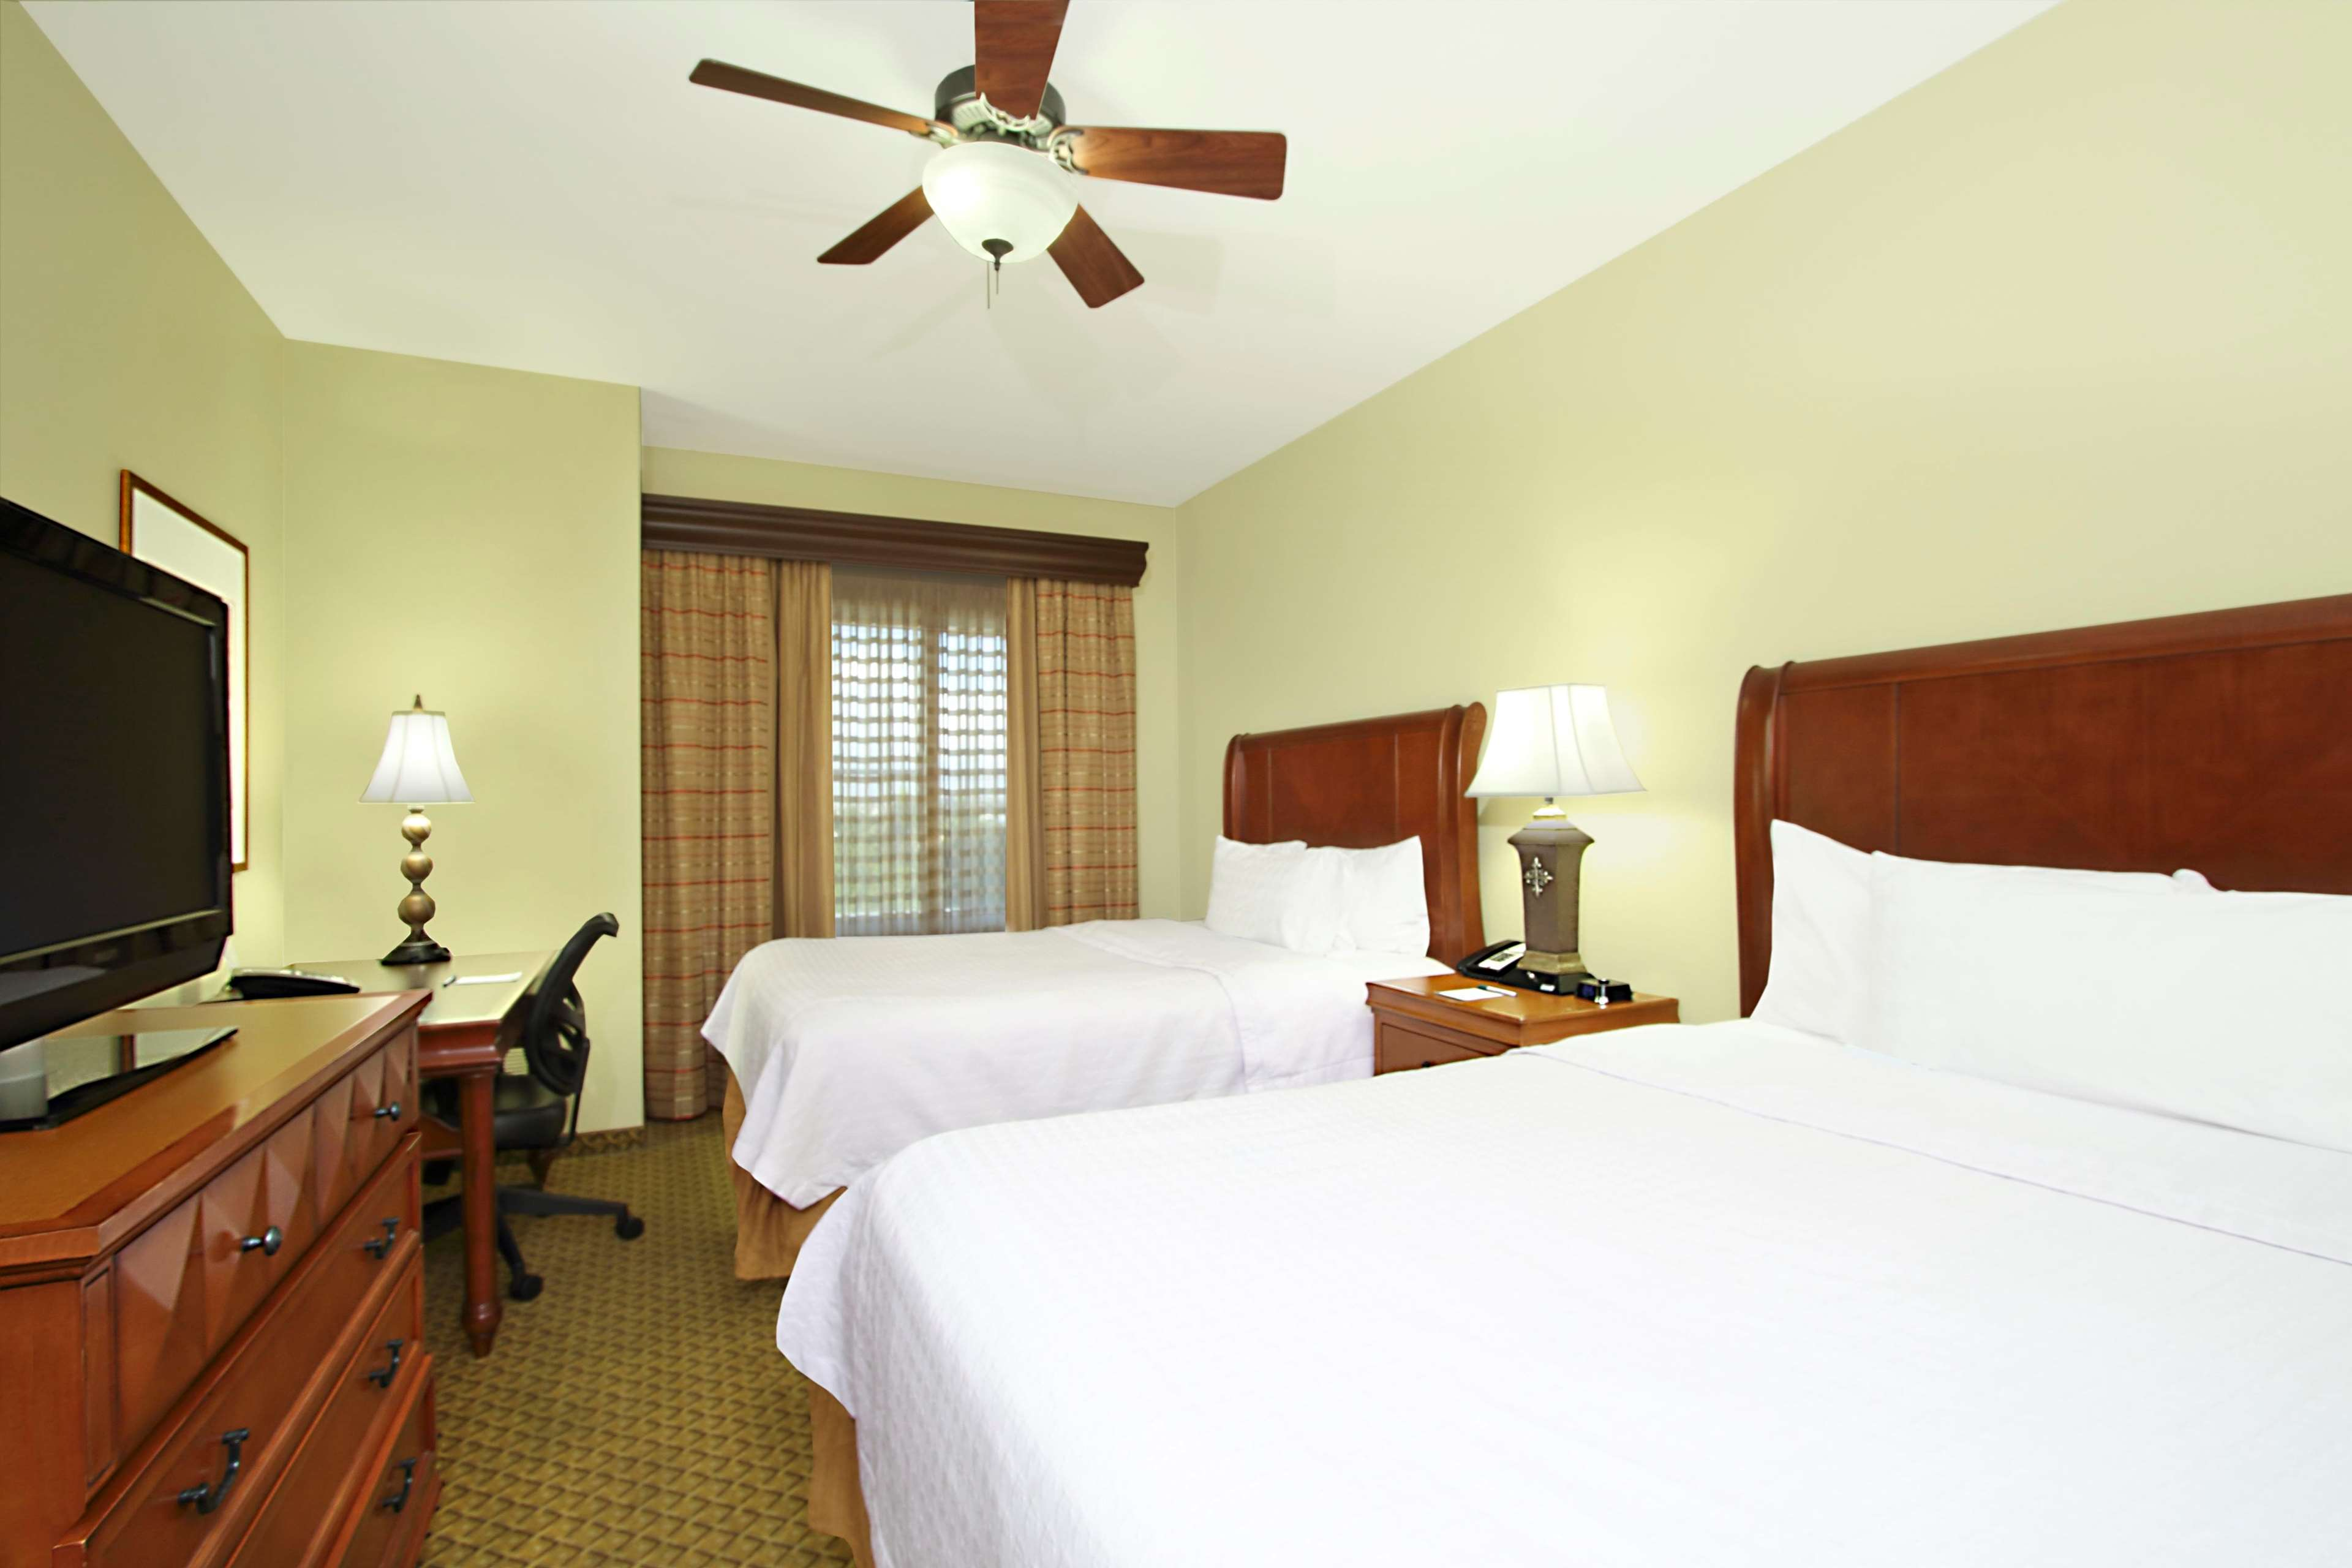 Homewood Suites by Hilton Miami - Airport West image 18